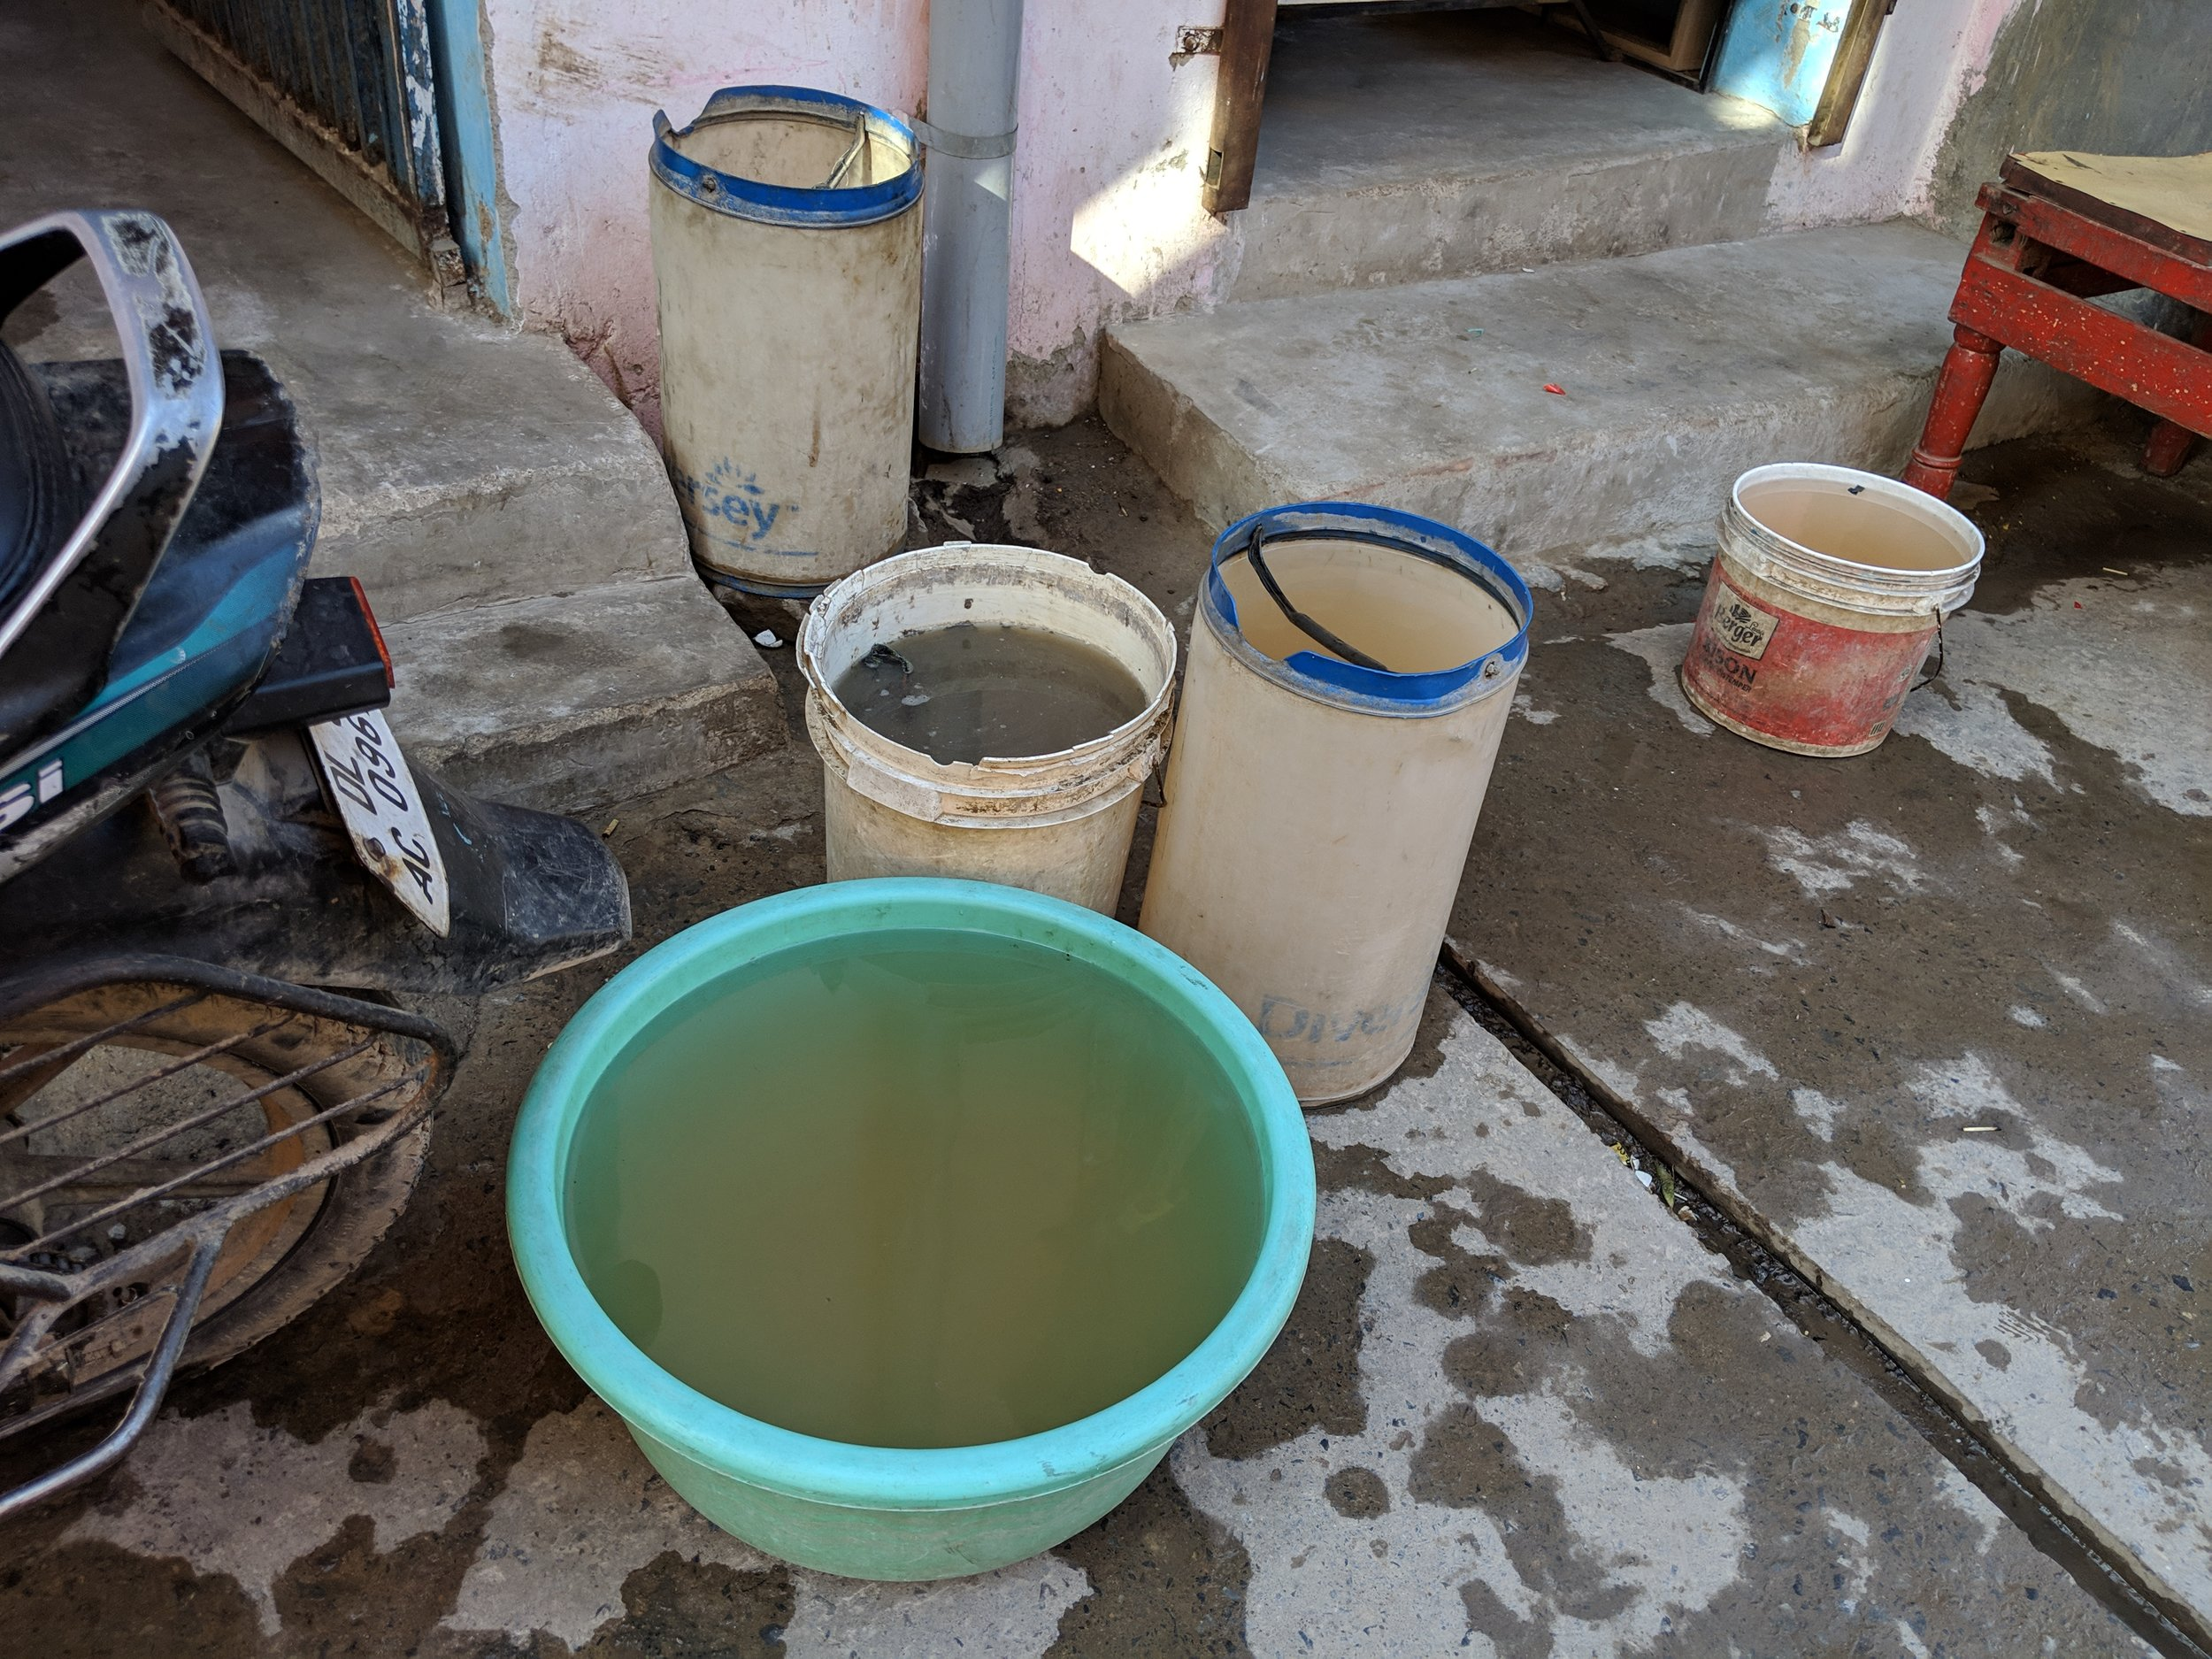 Access to sanitation - Water contamination is difficult to control in open stagnant containers. 150,000 children in India die every year from water borne illnesses. The most effective way to prevent this is through hand washing.